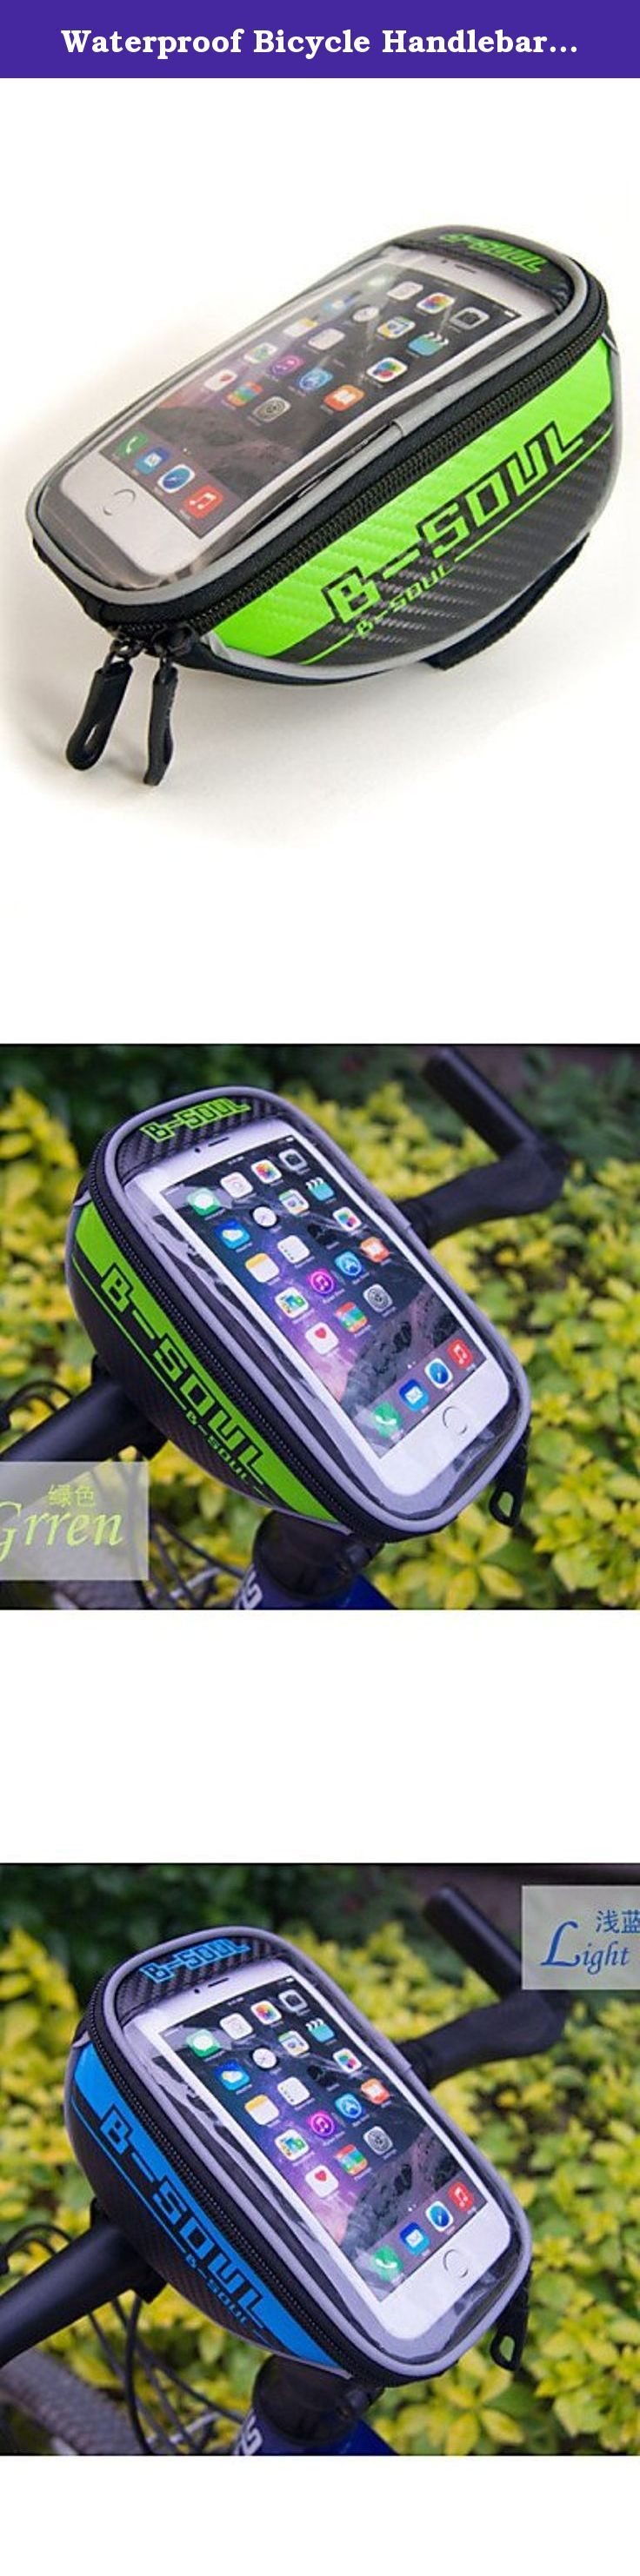 """Waterproof Bicycle Handlebar Bag for 5.5"""" Cellphones , green. Type:Bike Handlebar Bag, Bike Frame Bag, Cell Phone Bag, Activity:Cycling/Bike, Gender:Unisex, Occasion:Outdoor, Material:Nylon, Color:Blue, Gray, Red, Green, Function:Touch Screen, Wearable, Reflective Strip, Rain-Proof, Waterproof, Dimension (L¡ÁW¡ÁH) (cm):18*10*7cm, Net Weight (kg):0.112, Capacity (L): Capacity Range (L): Compatible Cell Phone Brands:Other Similar Size Phones, Iphone 6 Plus/6S Plus, Iphone 6/IPhone 6S, LG G3..."""